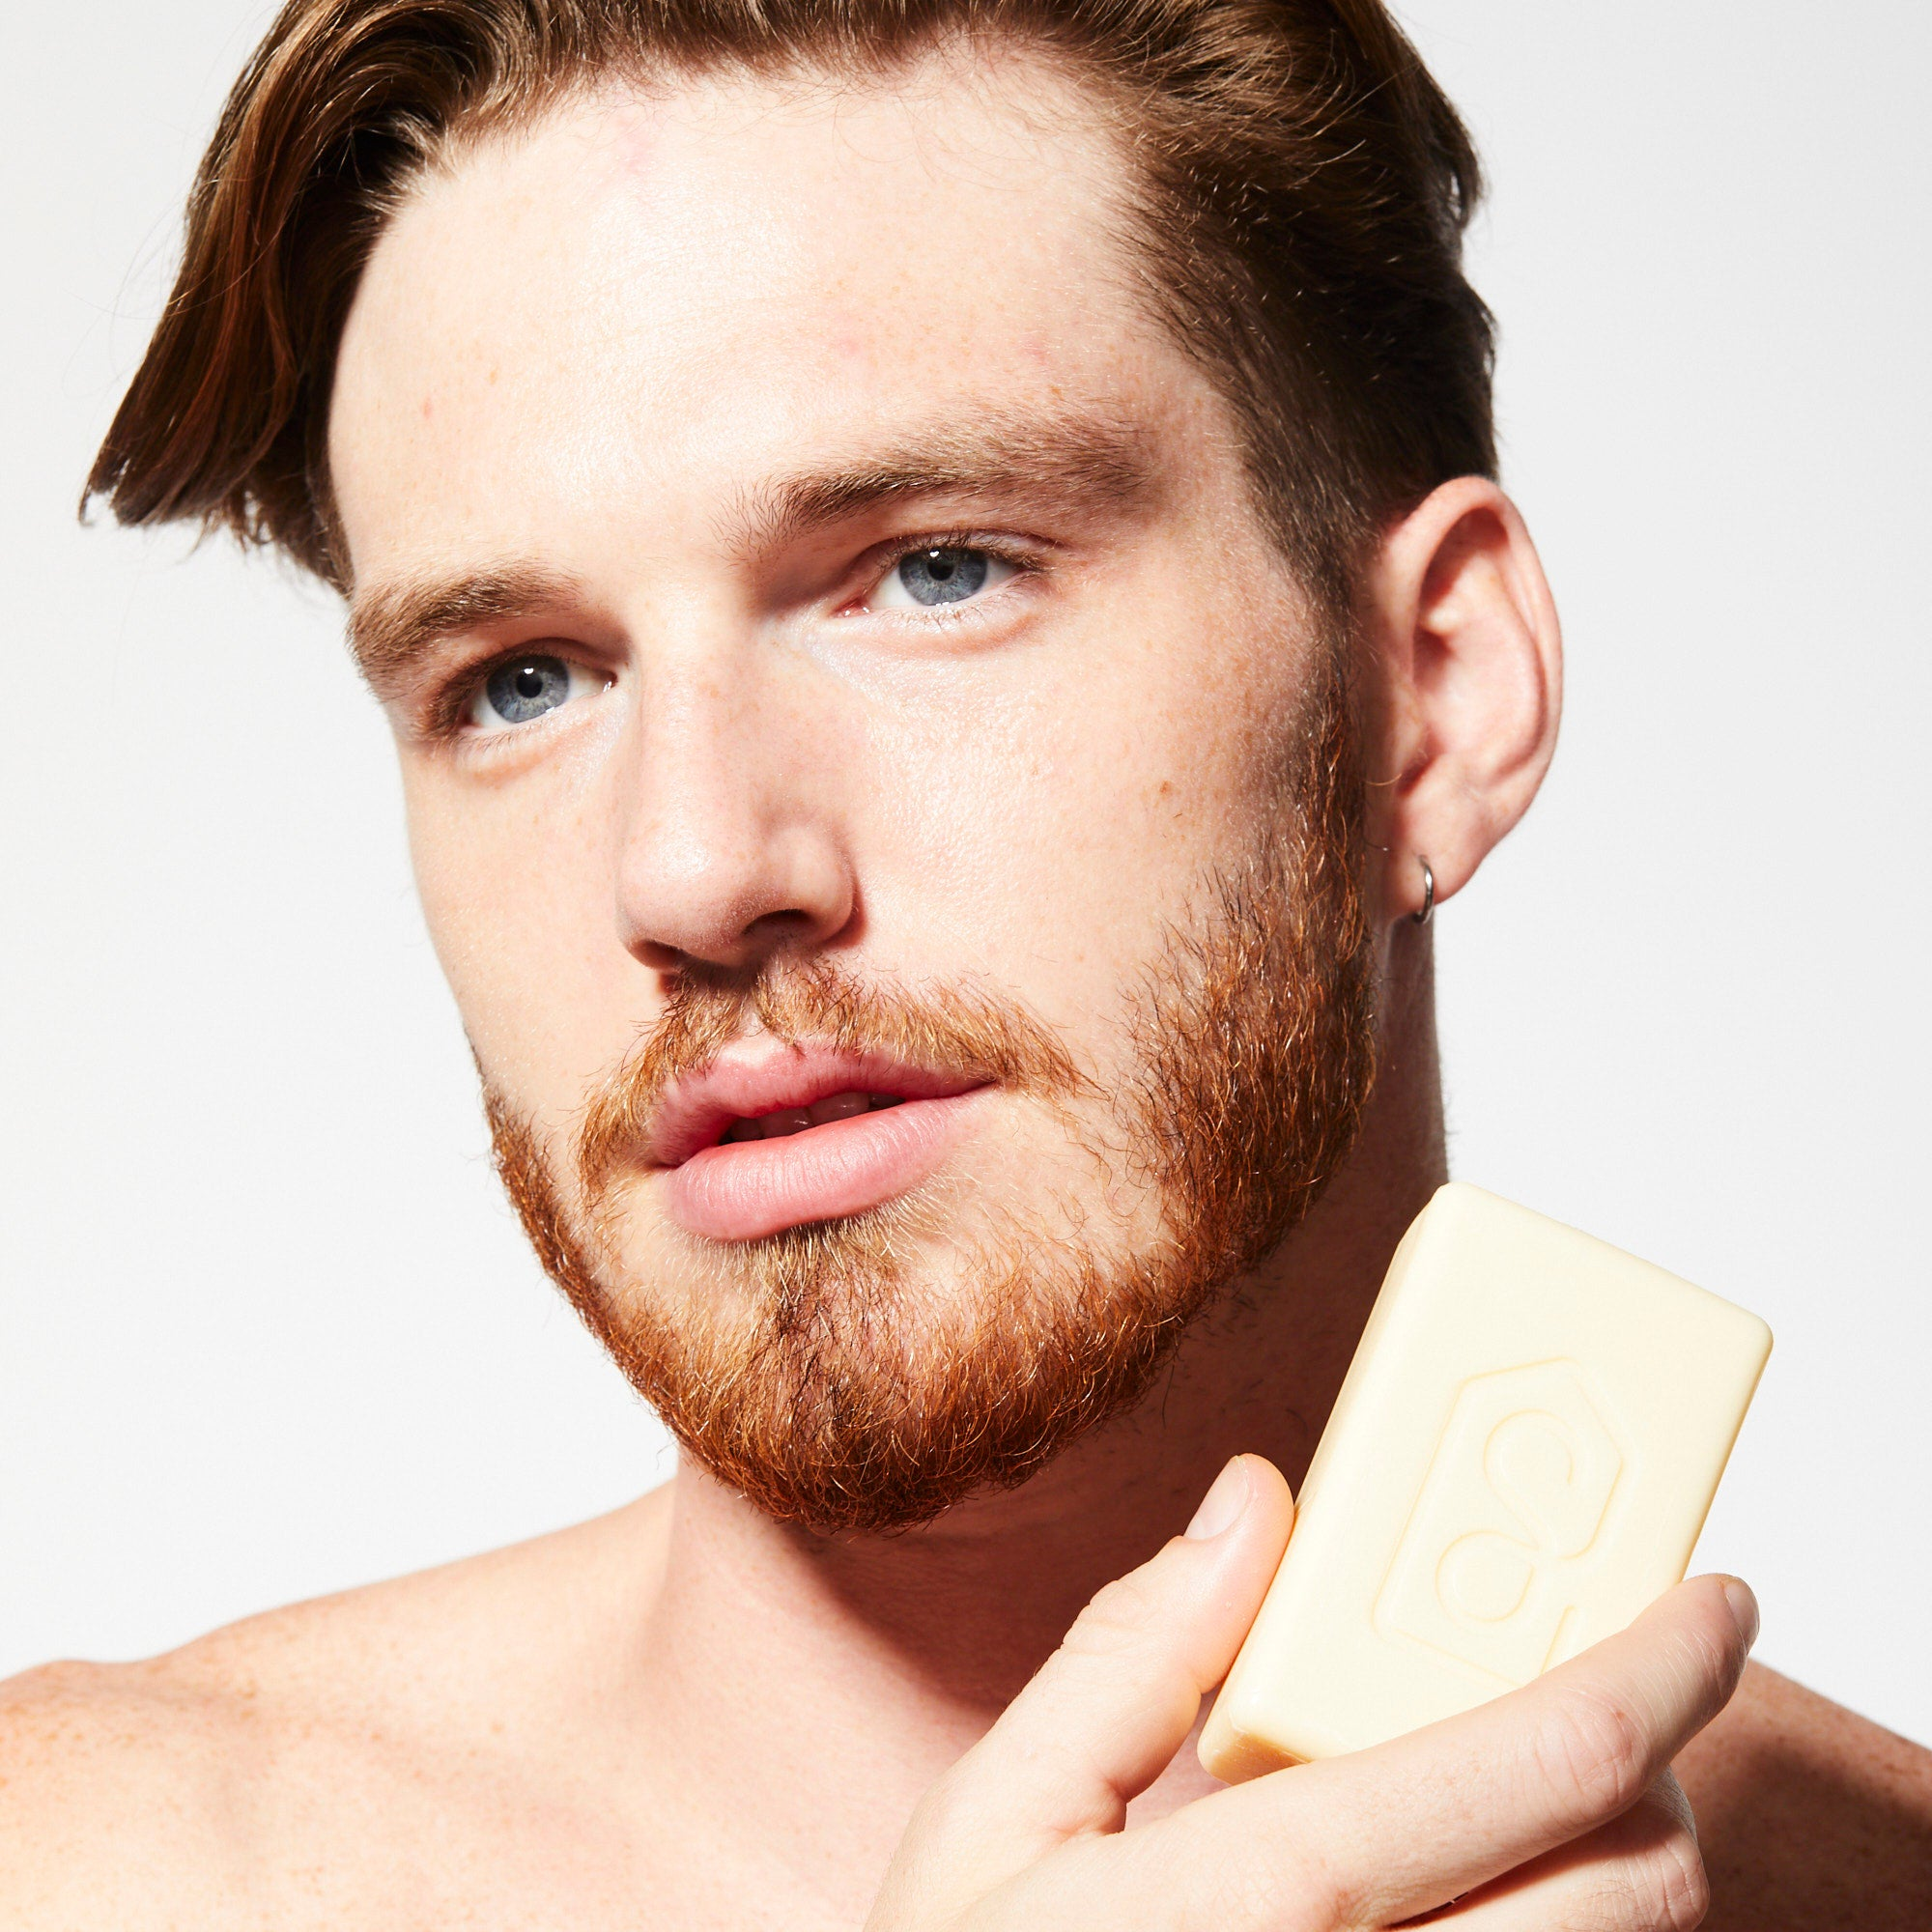 Bamboo Hydrate Bar Soap, man holding bar of soap near face